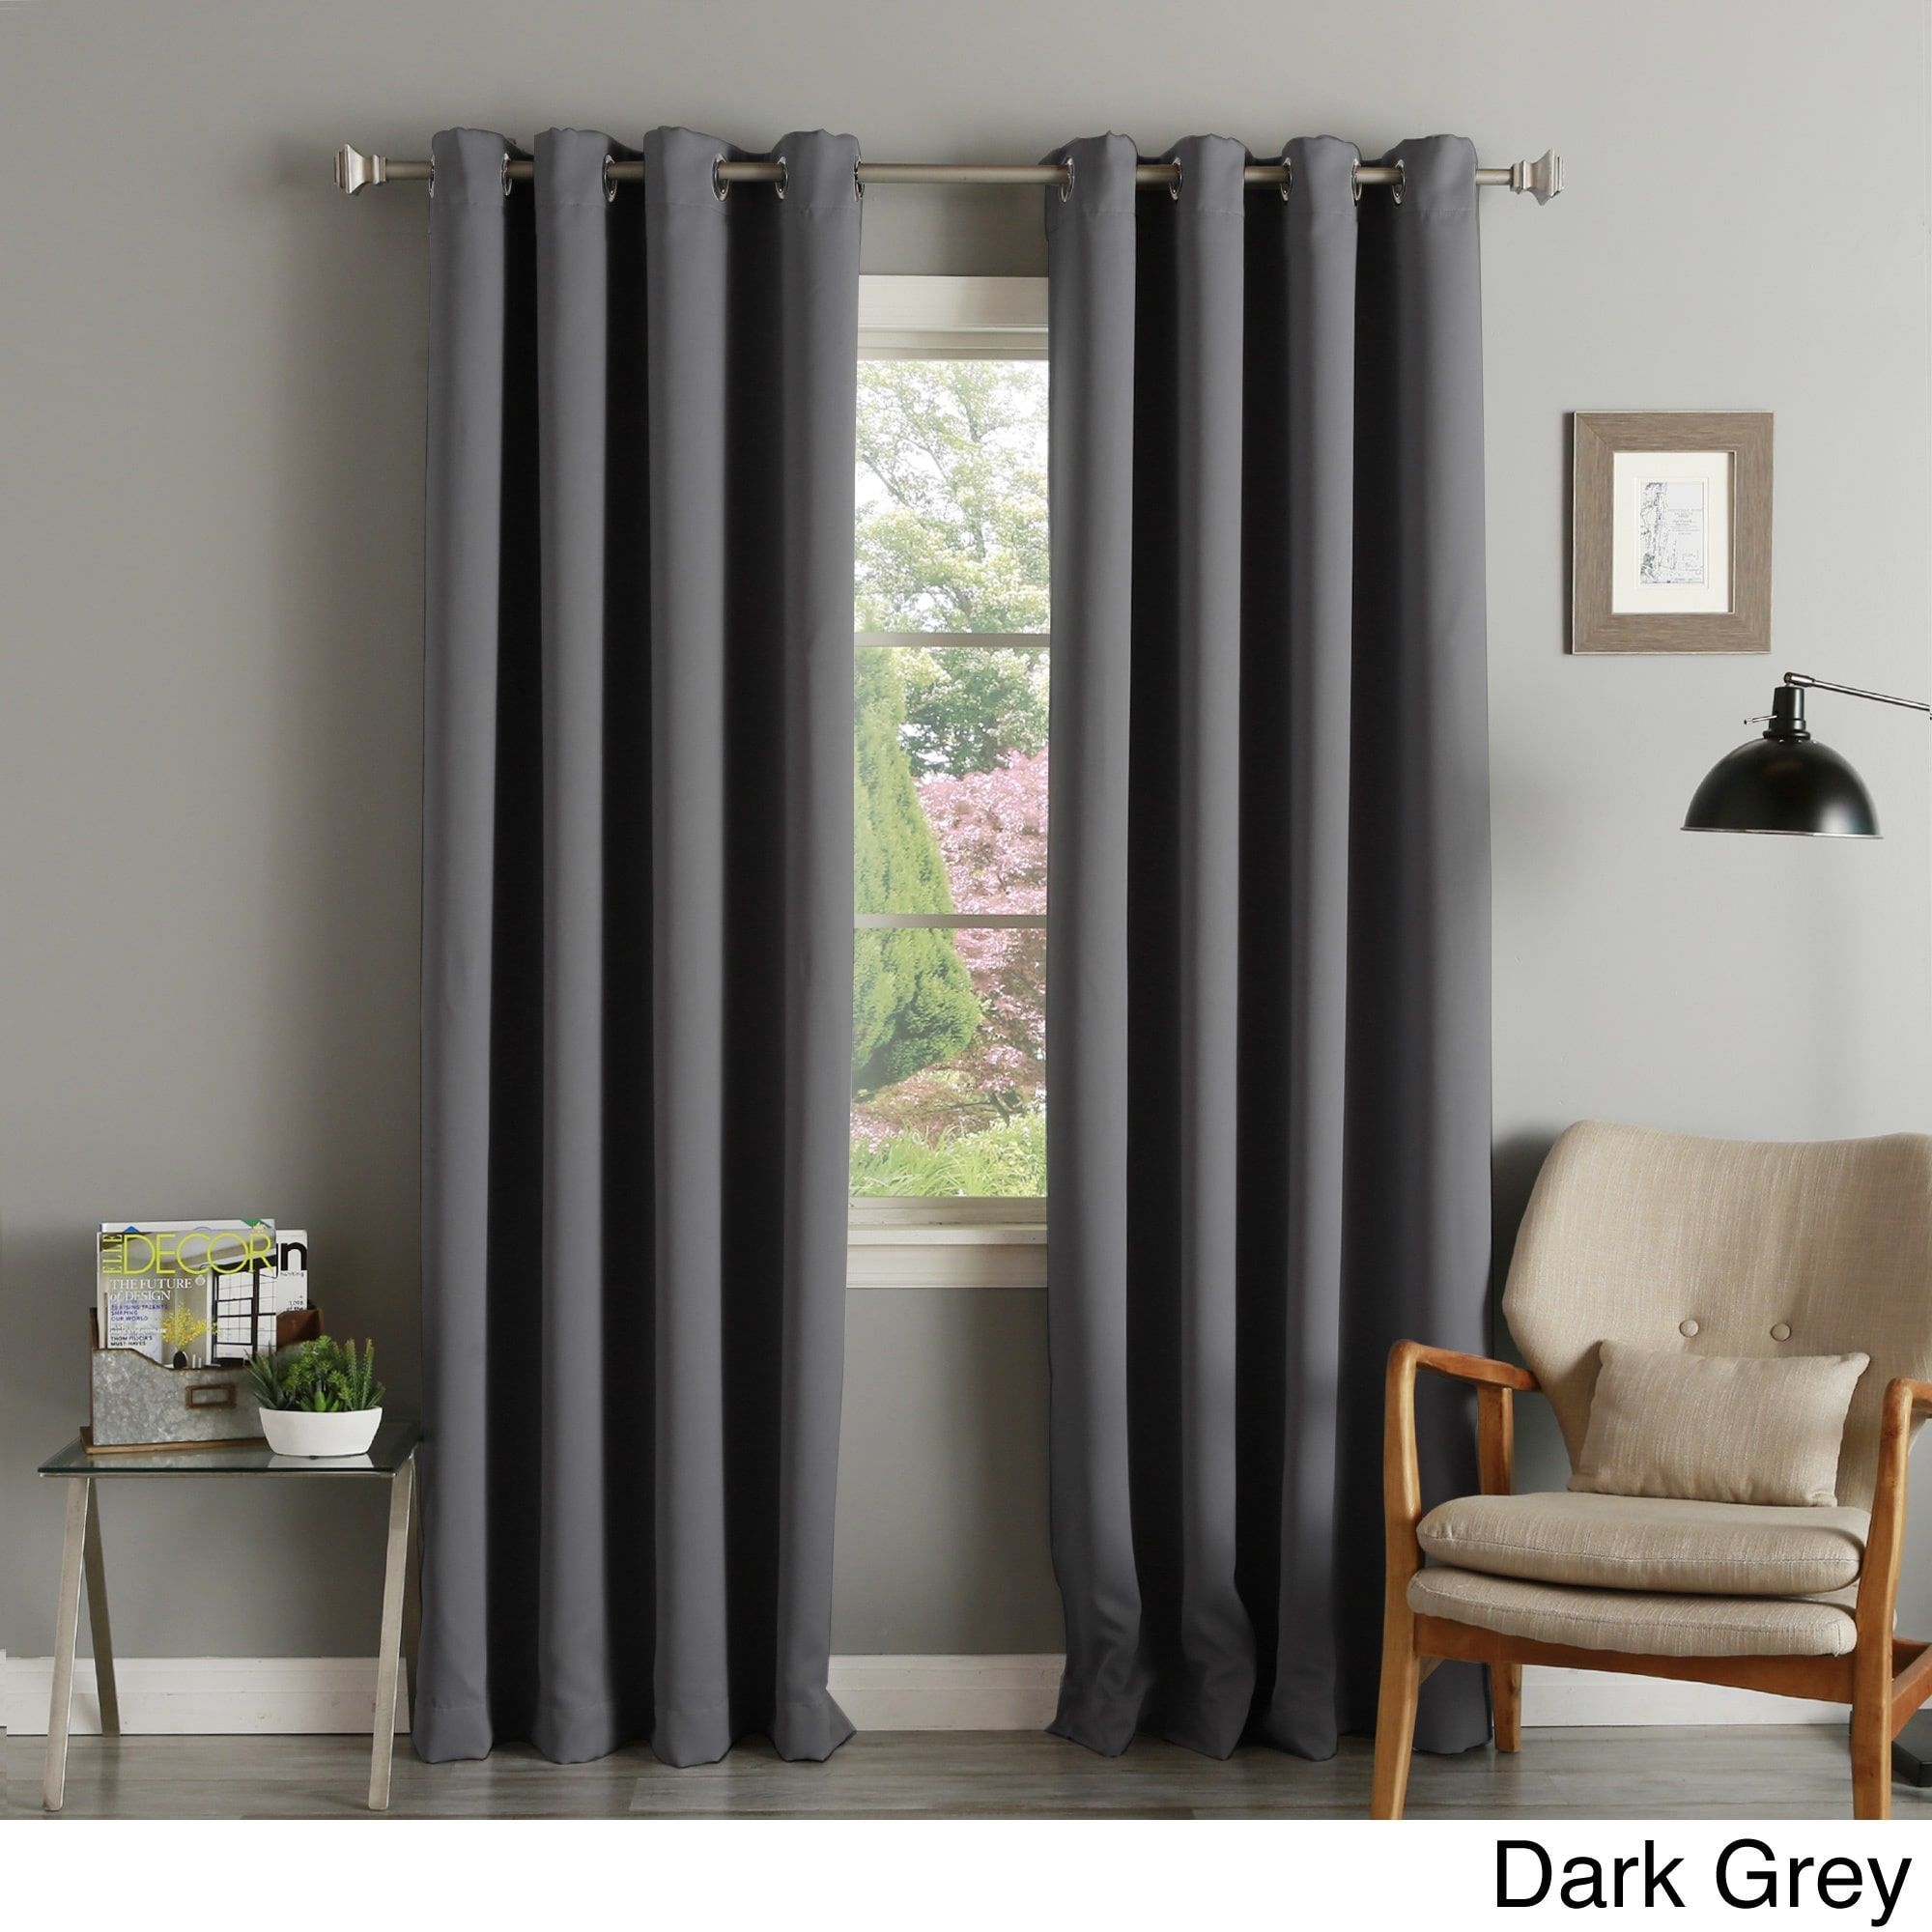 home living awesome target valance windows heat of curtains full ideas size room tar contemporary valances window for decor luxury curtain resistant